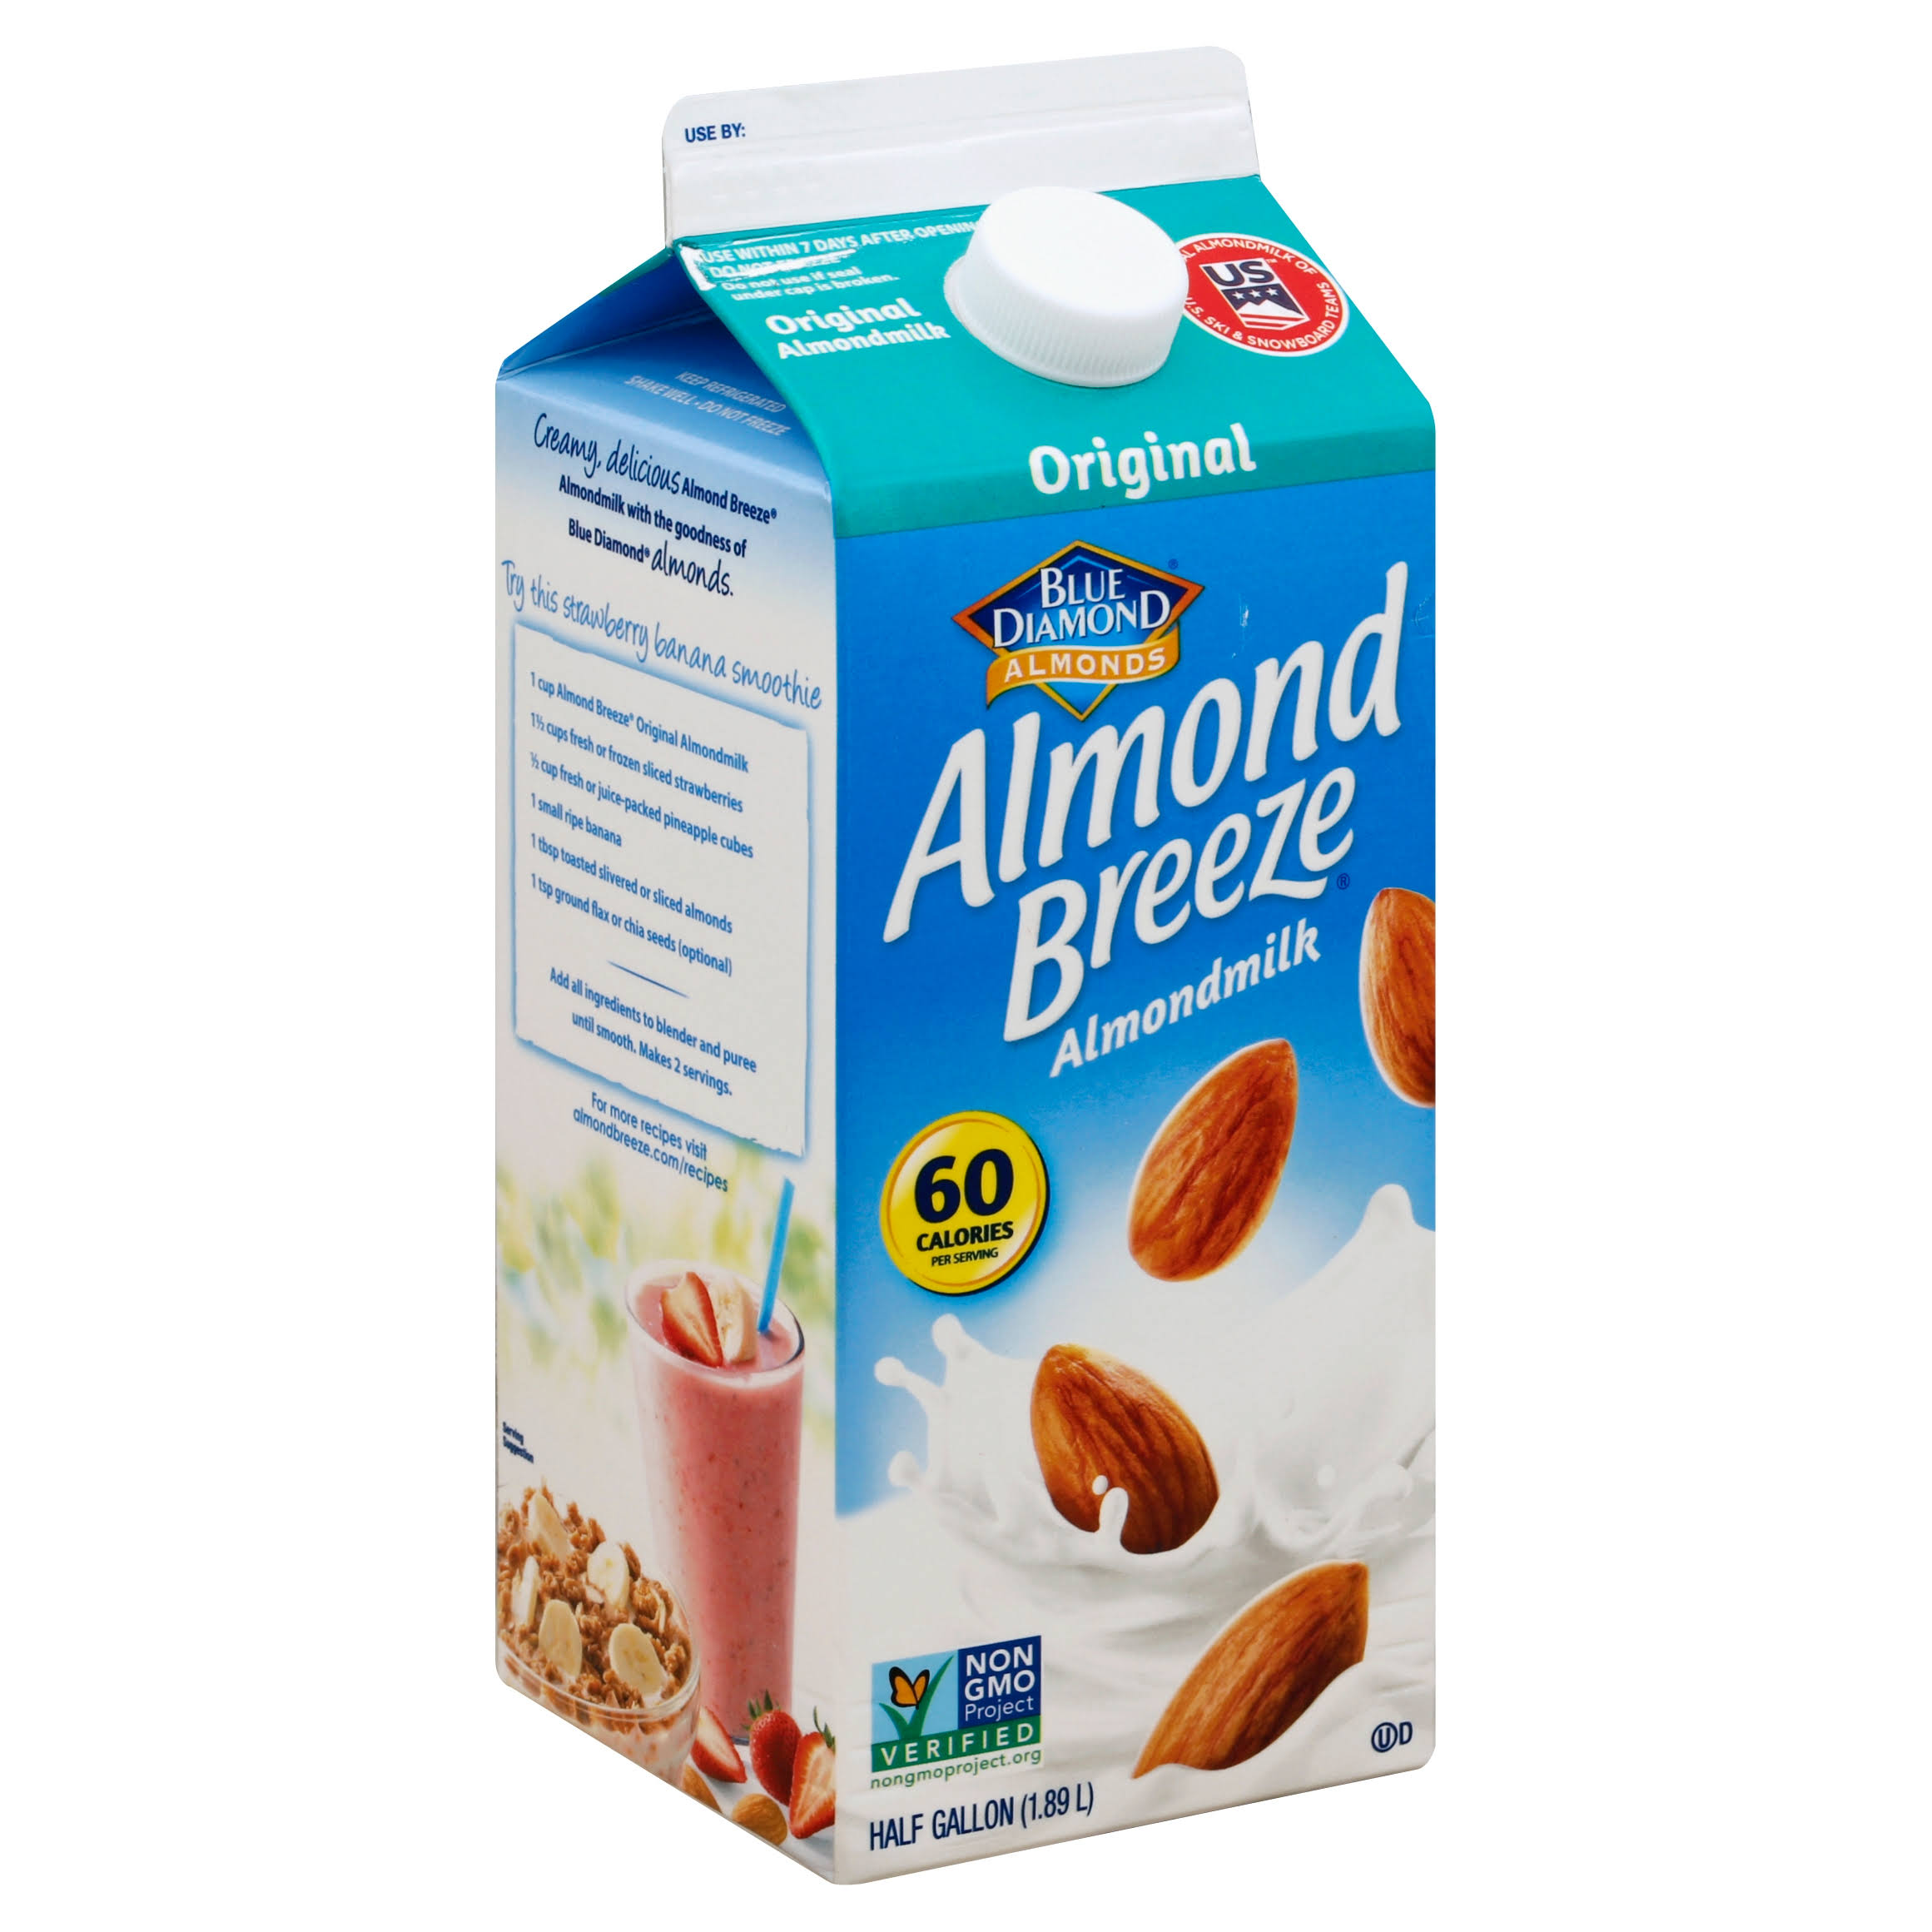 Blue Diamond Almonds Almond Breeze Original Almondmilk - 1/2 Gal